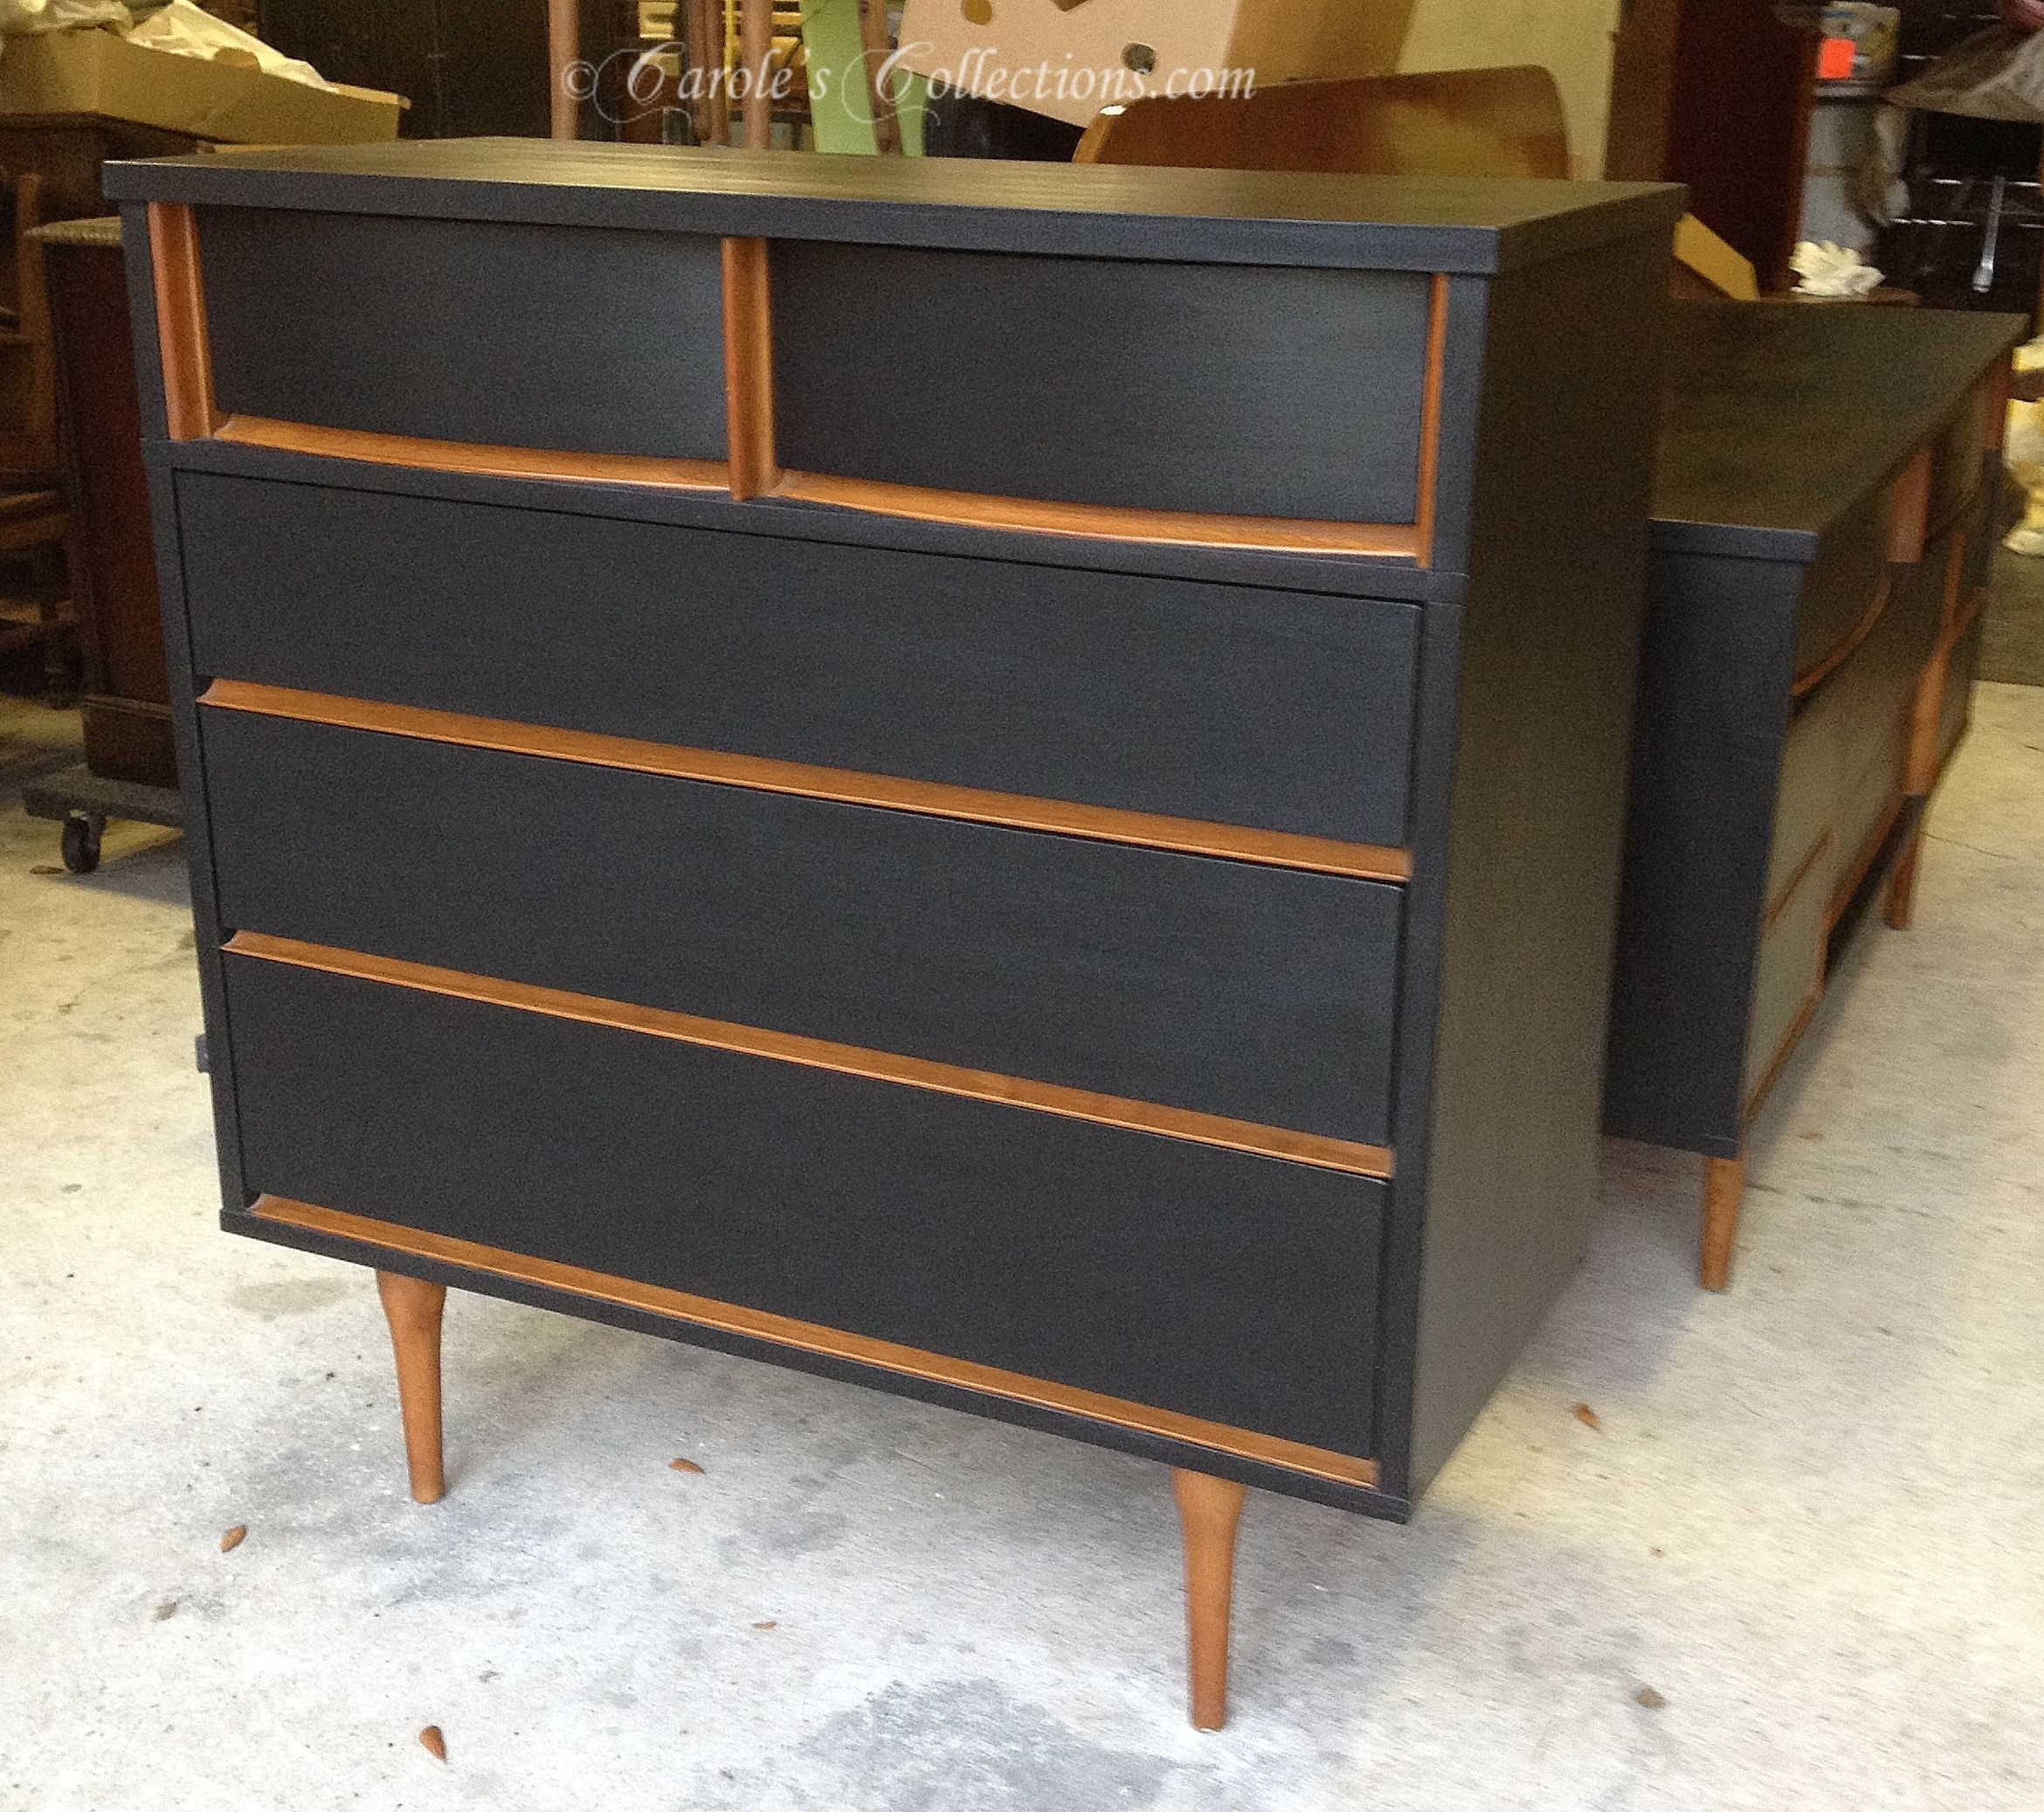 Harmony House Chest Of Drawers Matching Dresser Available Too Carolescollections Midcentury Shabby Paints Shabby Paints Furniture Furniture Makeover